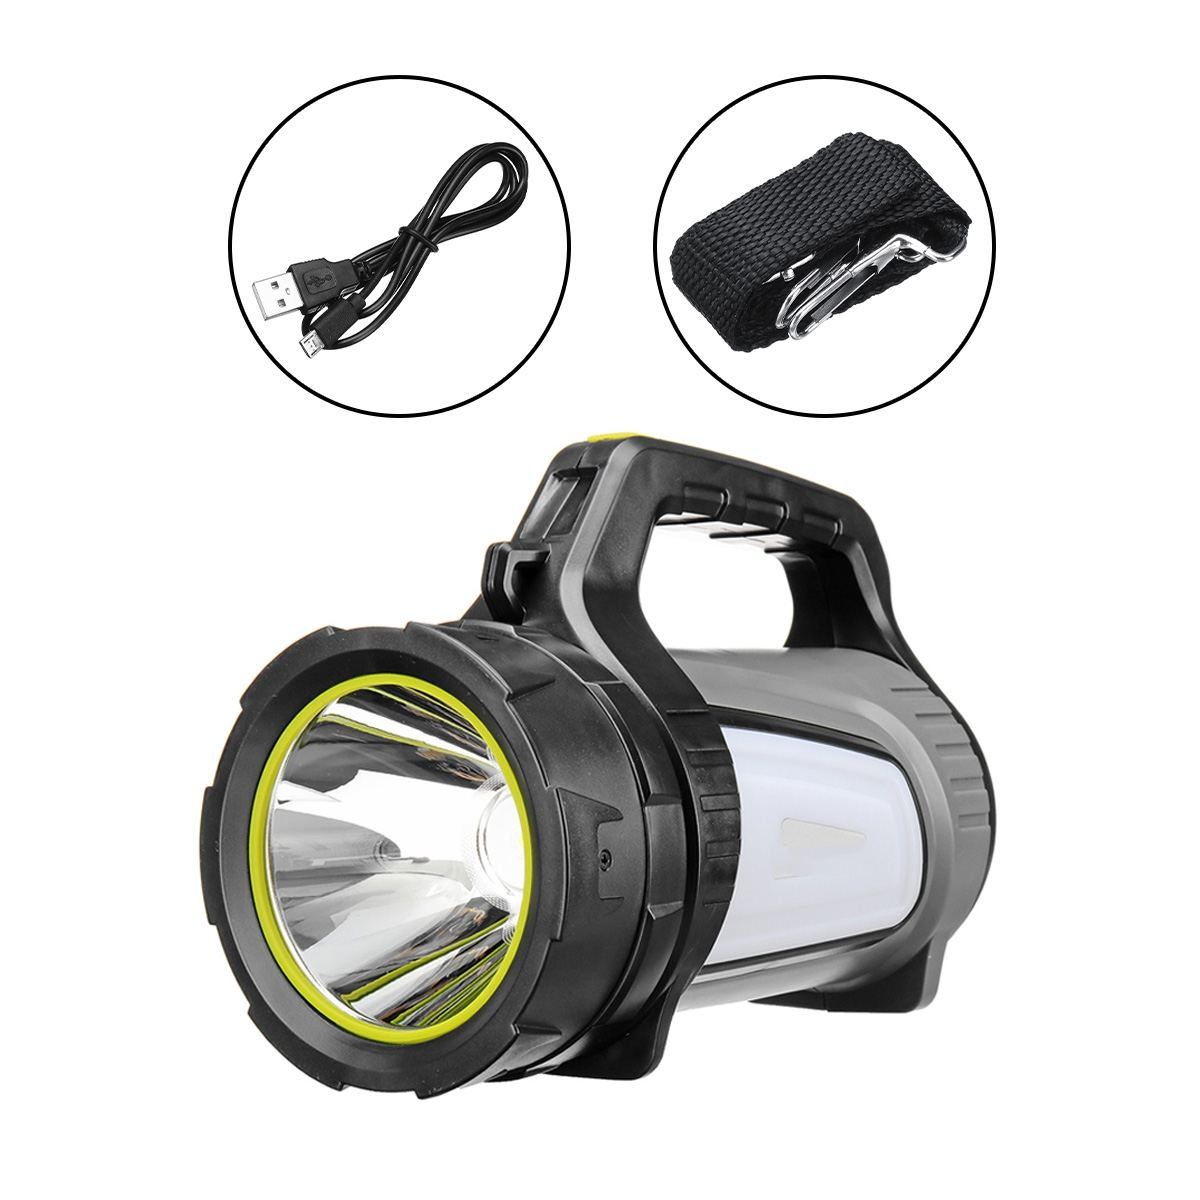 100w 9800mAH  Lantern Flashlight Portable Multifunctional Home Searchlight Outdoor LED Rechargeable Light Searchlight Lantern100w 9800mAH  Lantern Flashlight Portable Multifunctional Home Searchlight Outdoor LED Rechargeable Light Searchlight Lantern